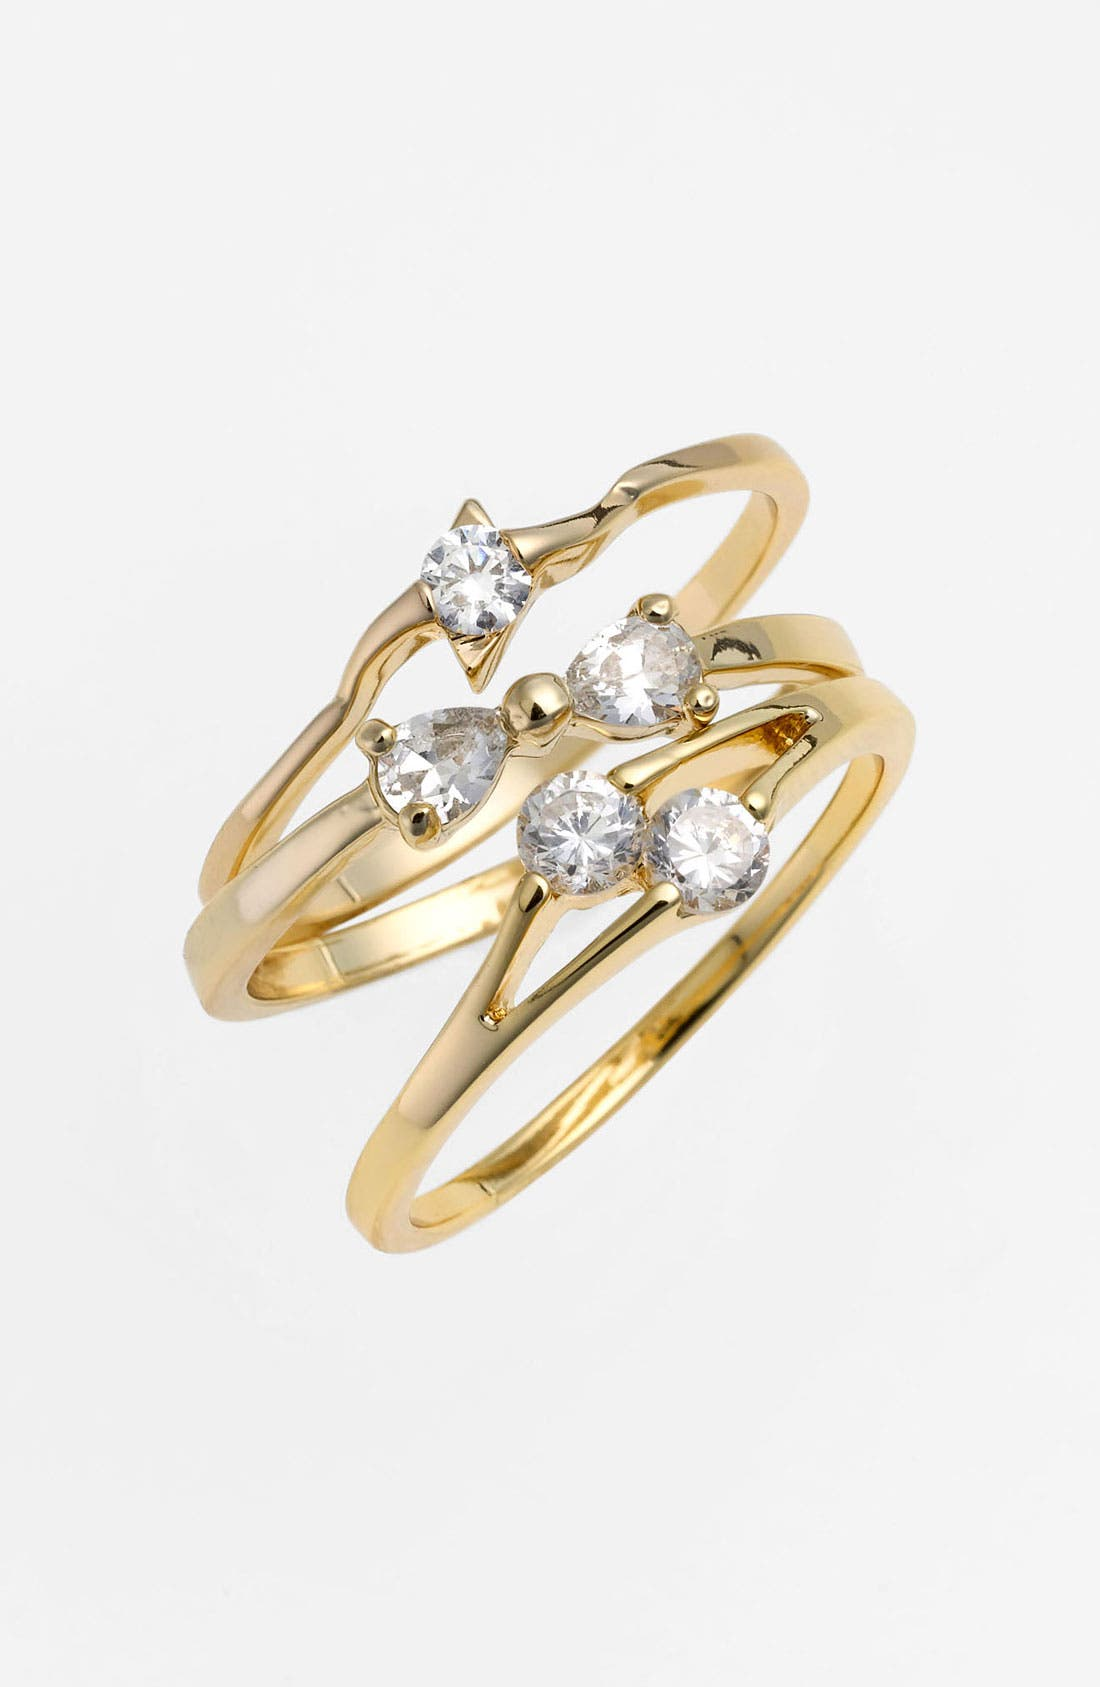 Main Image - Ariella Collection Stackable Cubic Zirconia Rings (Set of 3) (Nordstrom Exclusive)